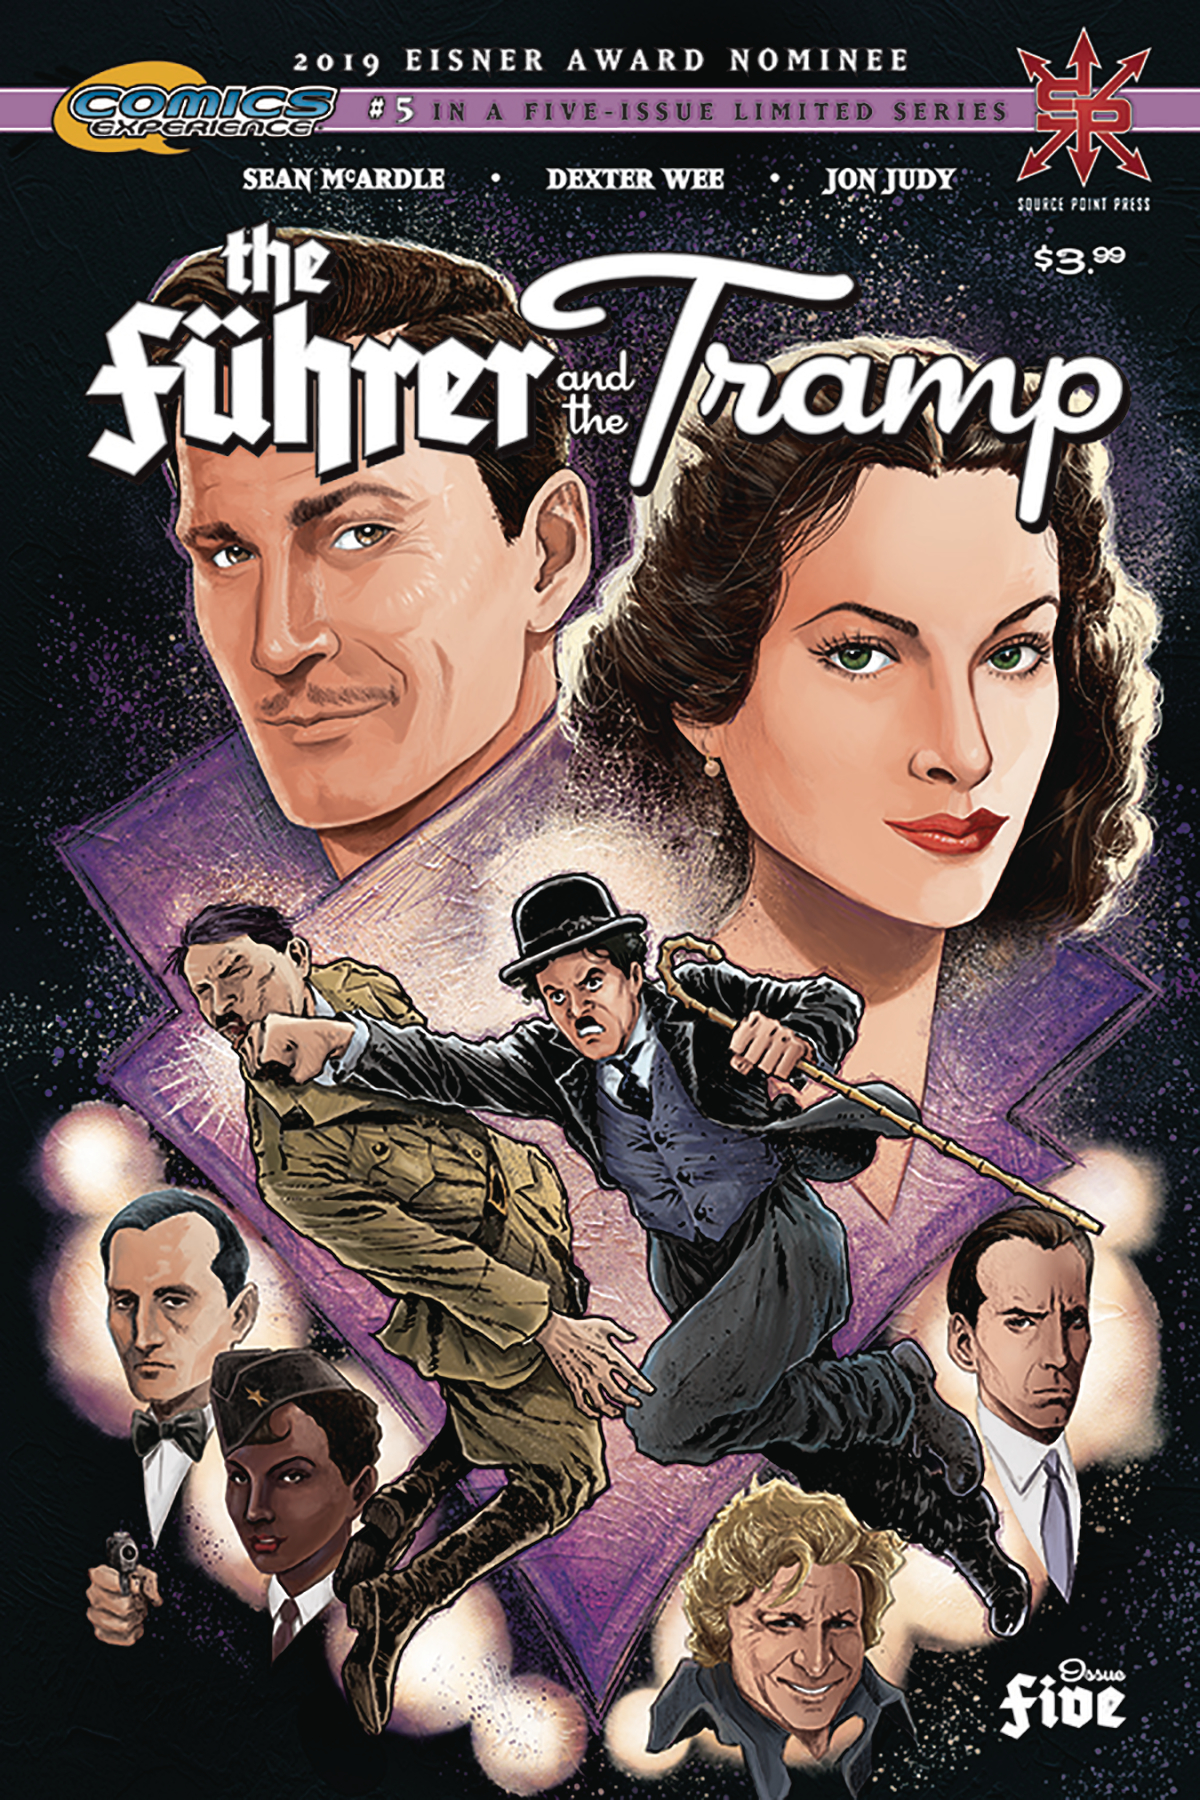 FUHRER AND THE TRAMP #5 (OF 5)